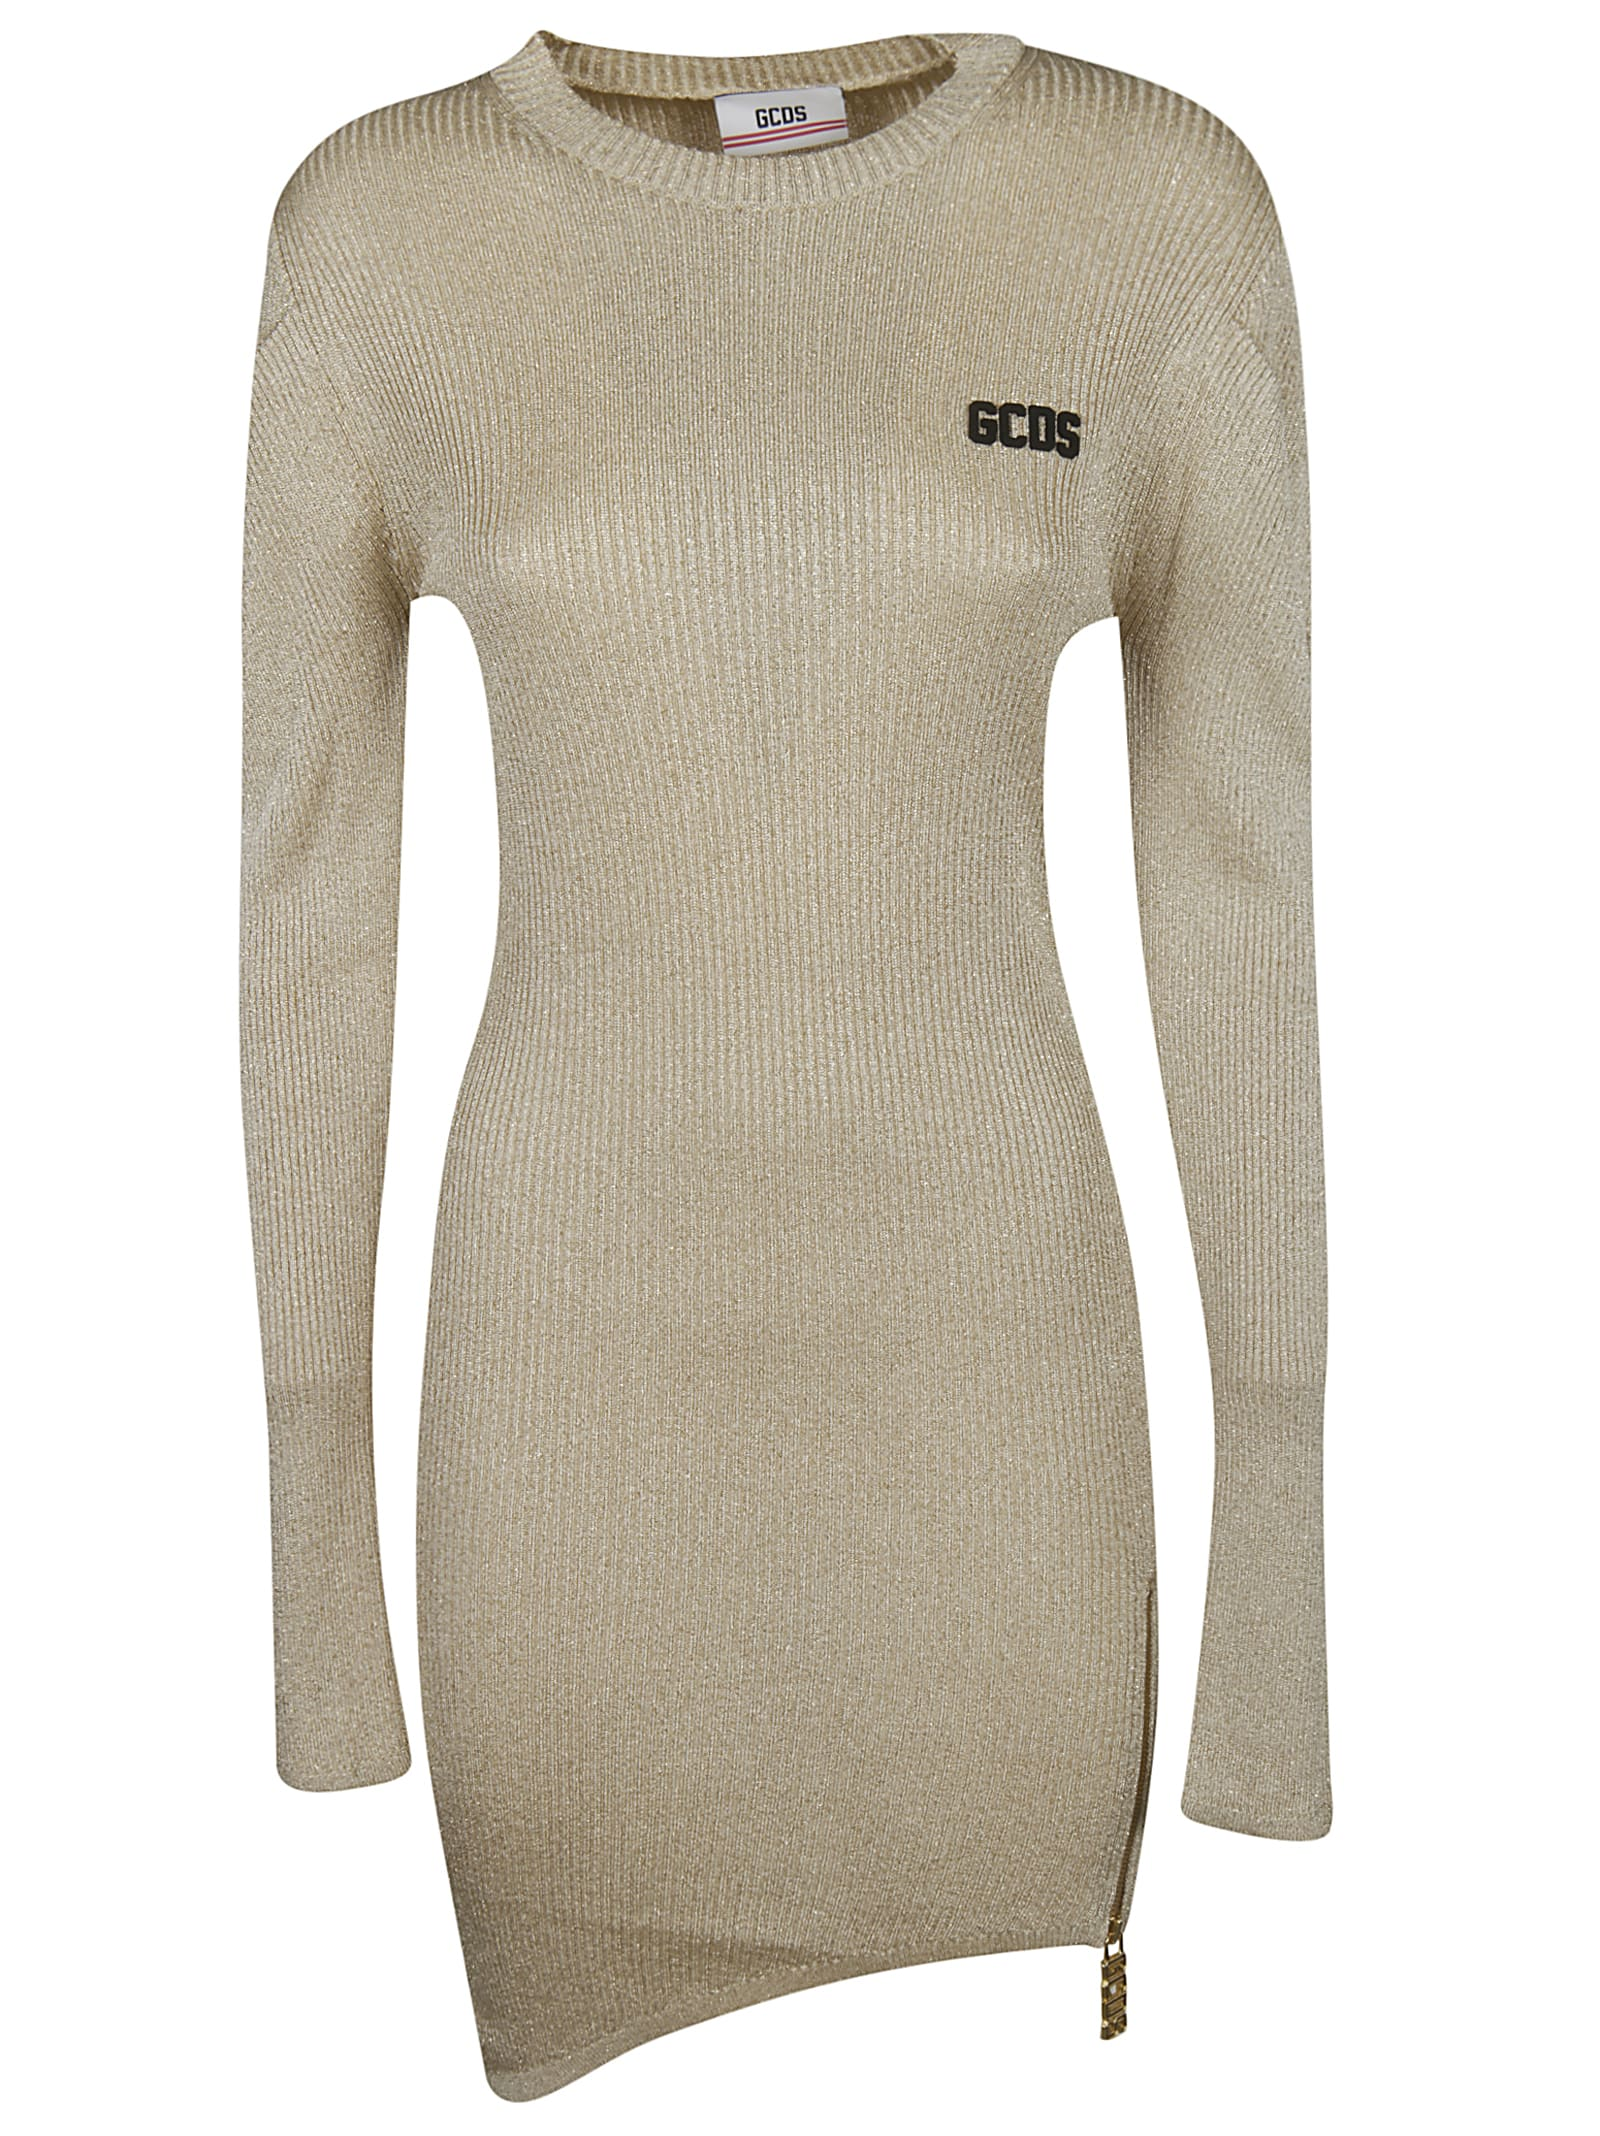 GCDS Logo Patch Sweater Dress